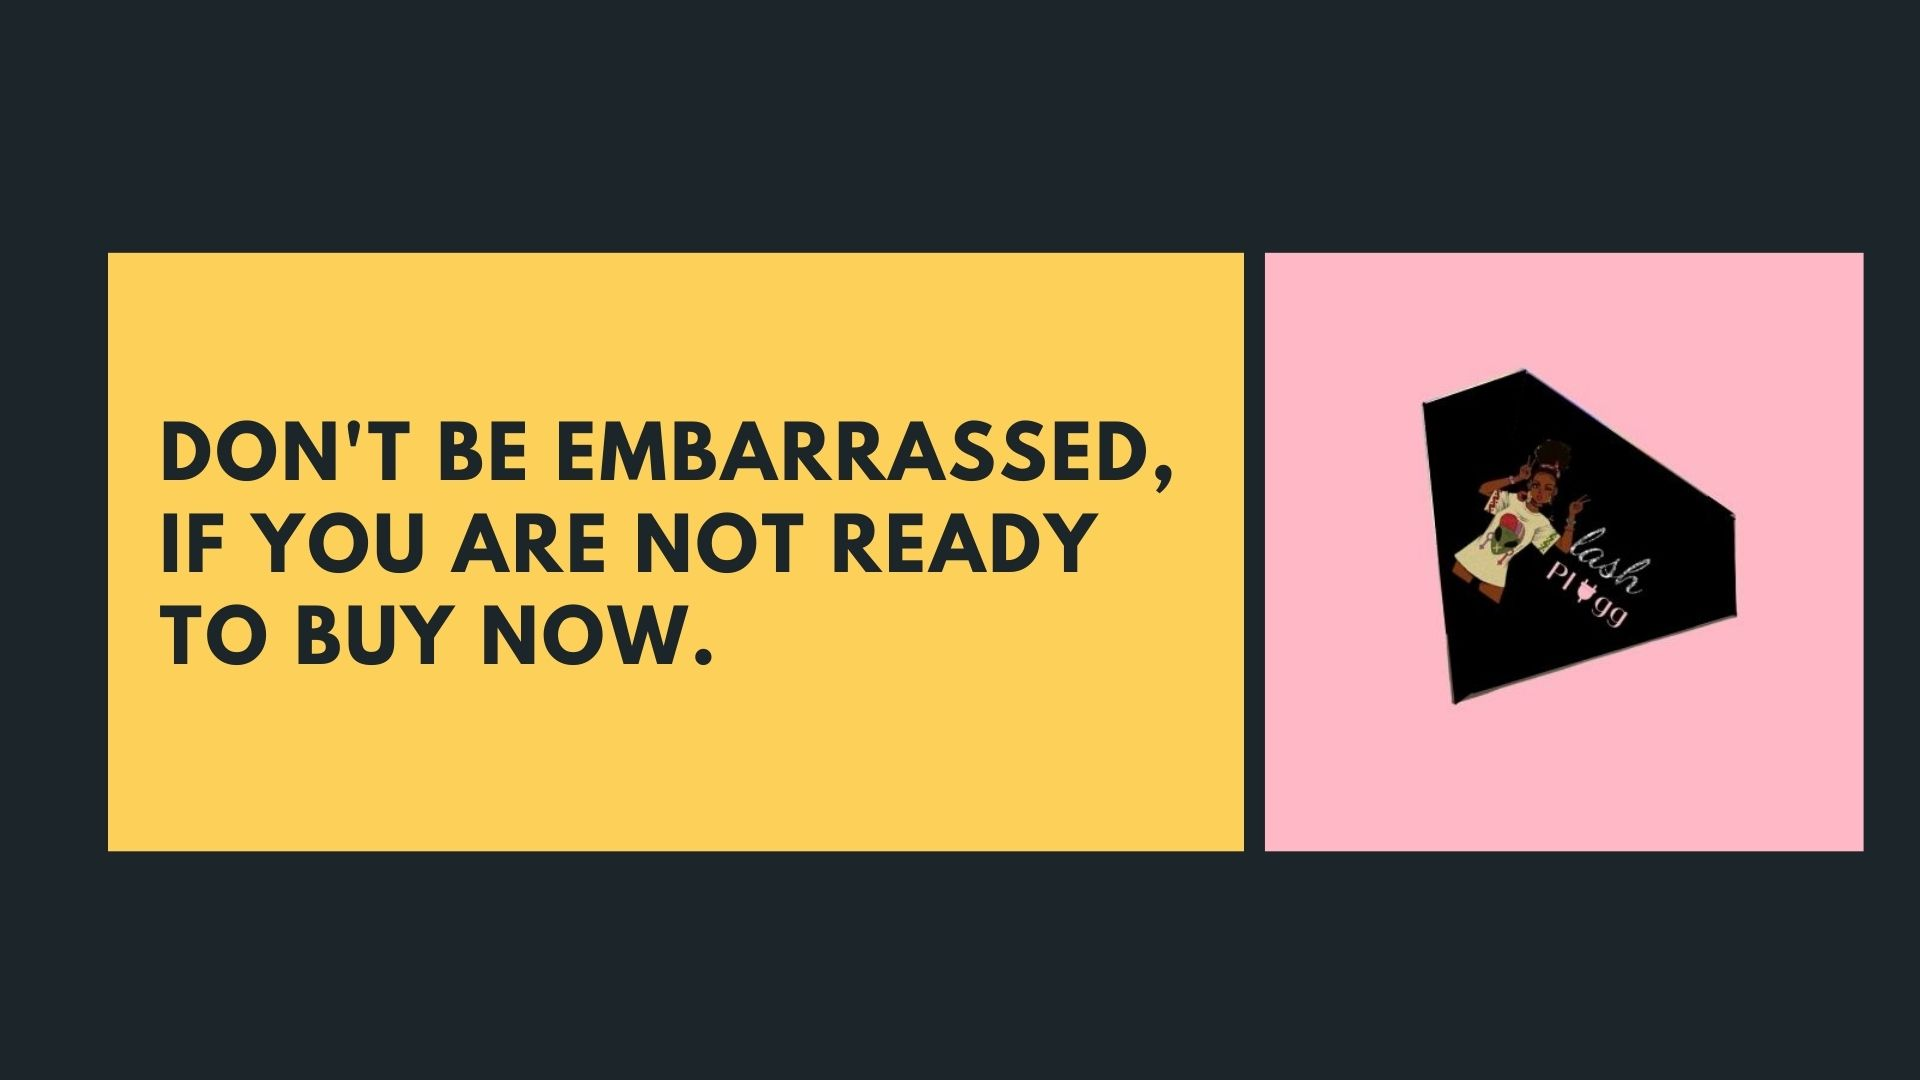 Don't be embarrassed, if you are not ready to buy now.